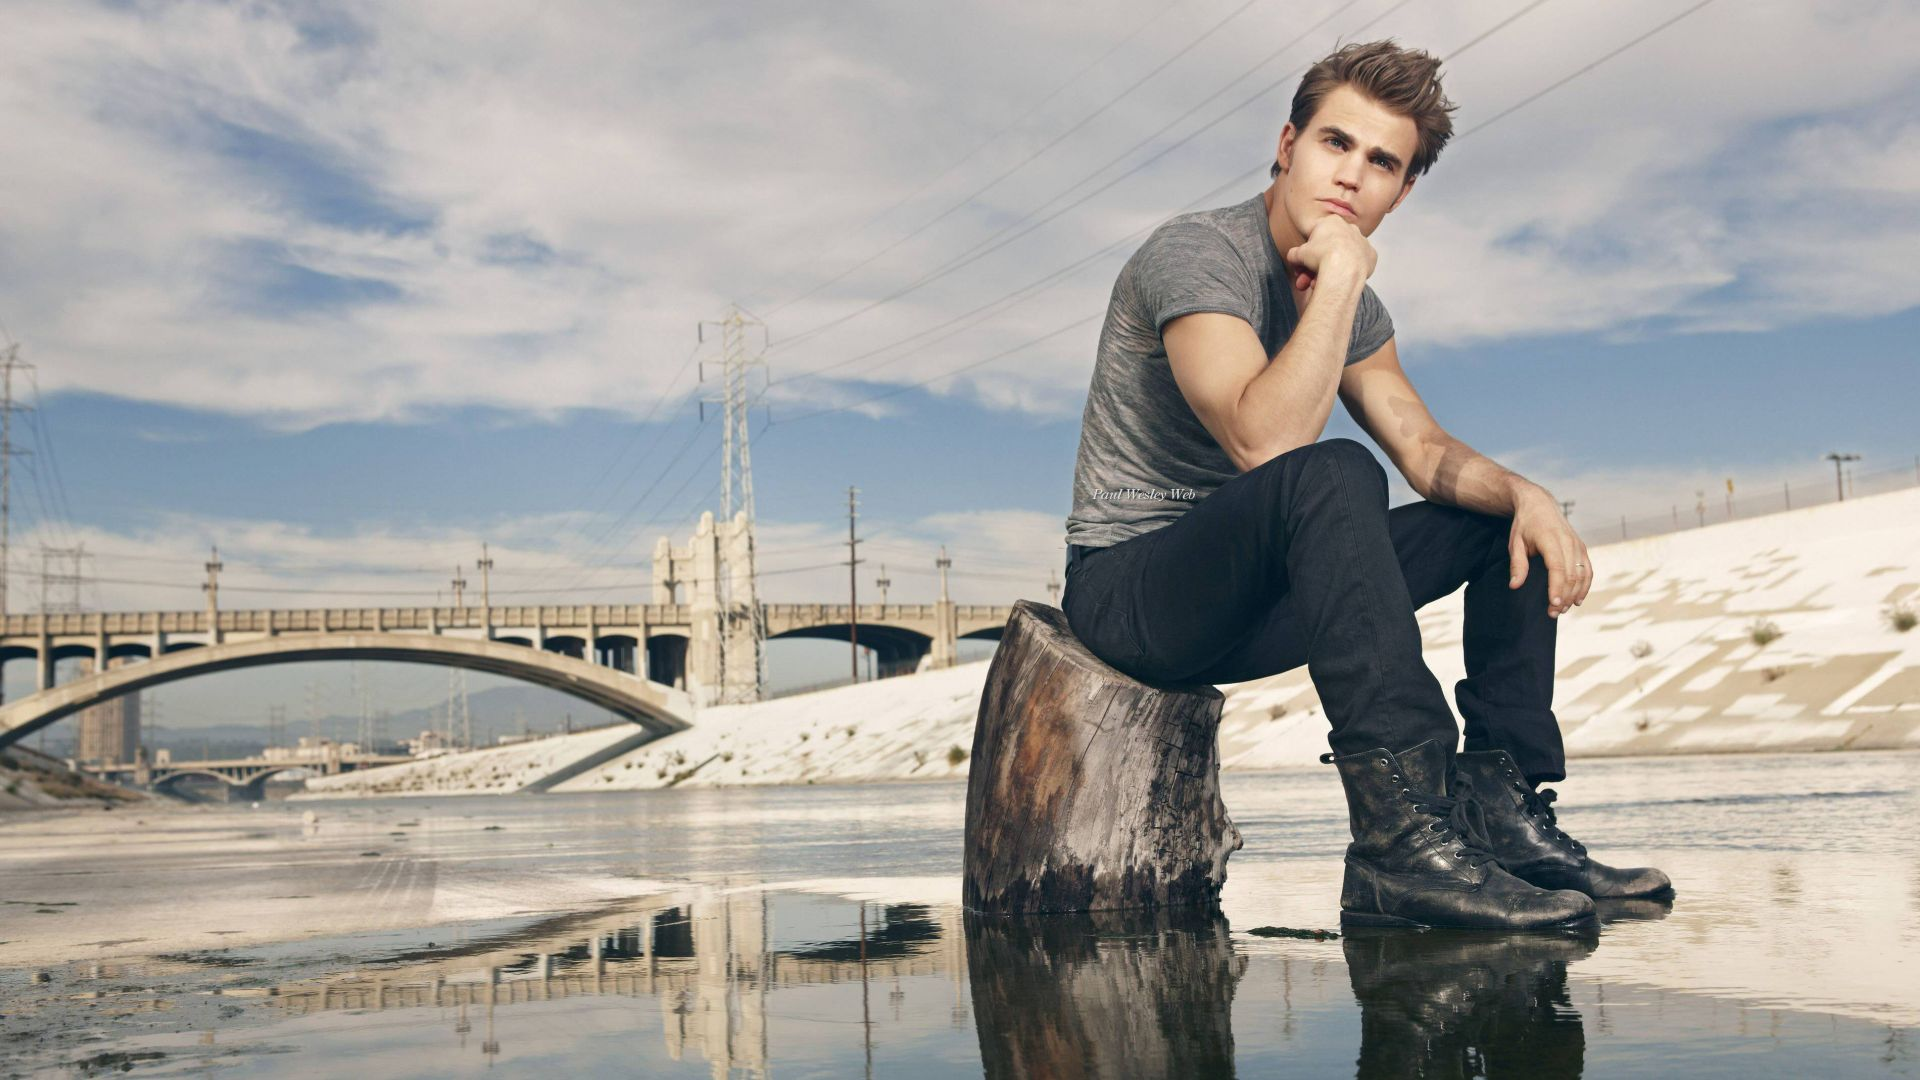 Пол Уэсли, Paul Wesley, photo, 4k (horizontal)